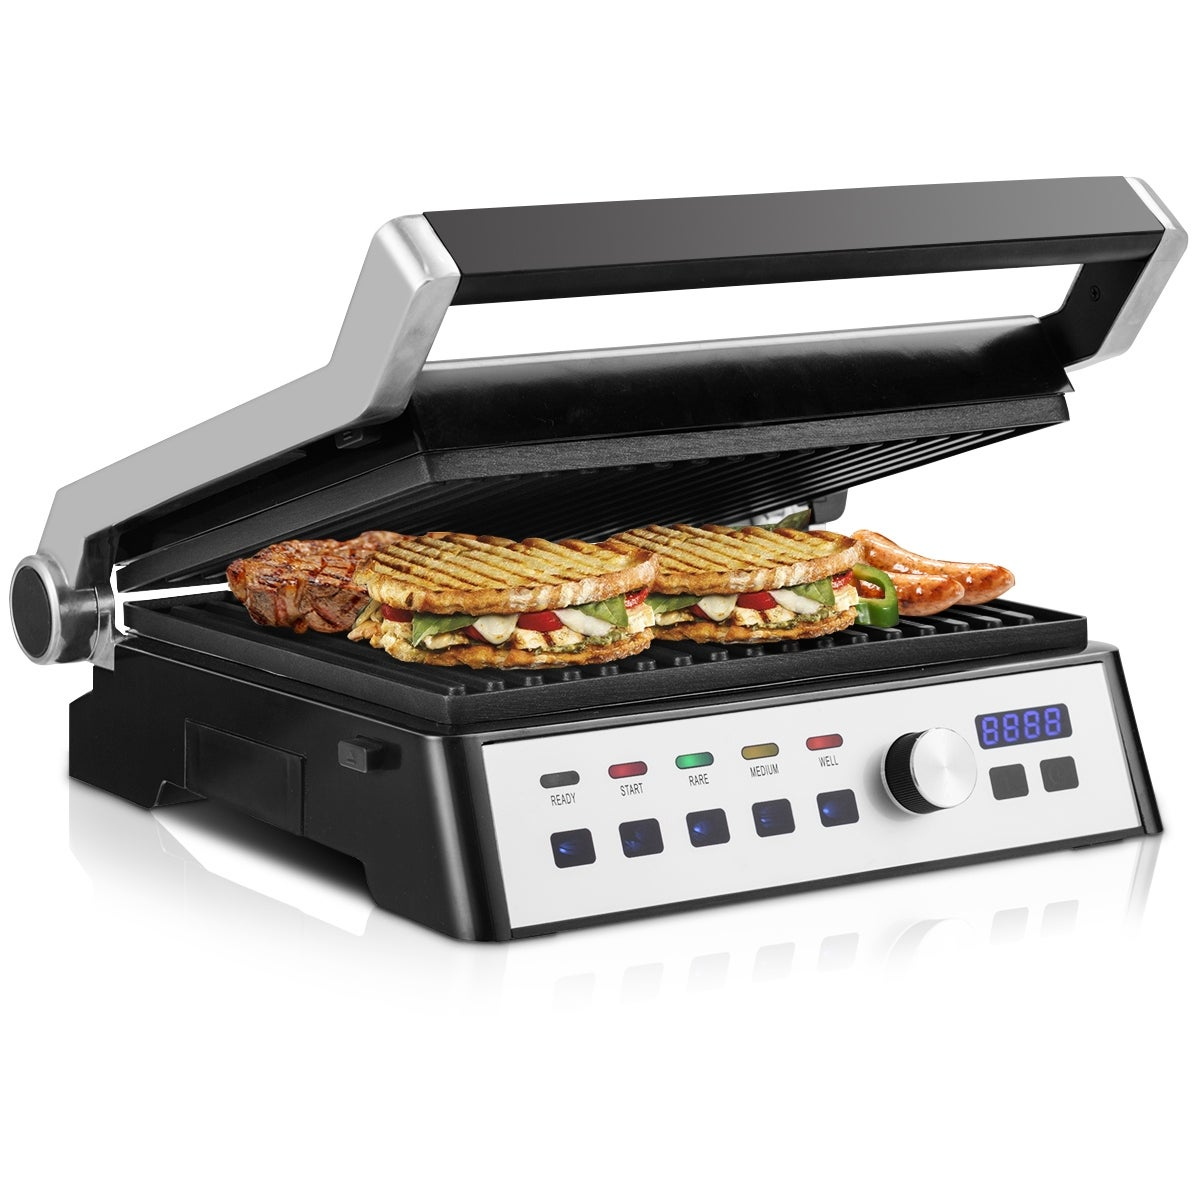 Gymax Electric Grill 1500W LCD Touch Display&Removable Plates Non-stick  Indoor Kitchen - as pic